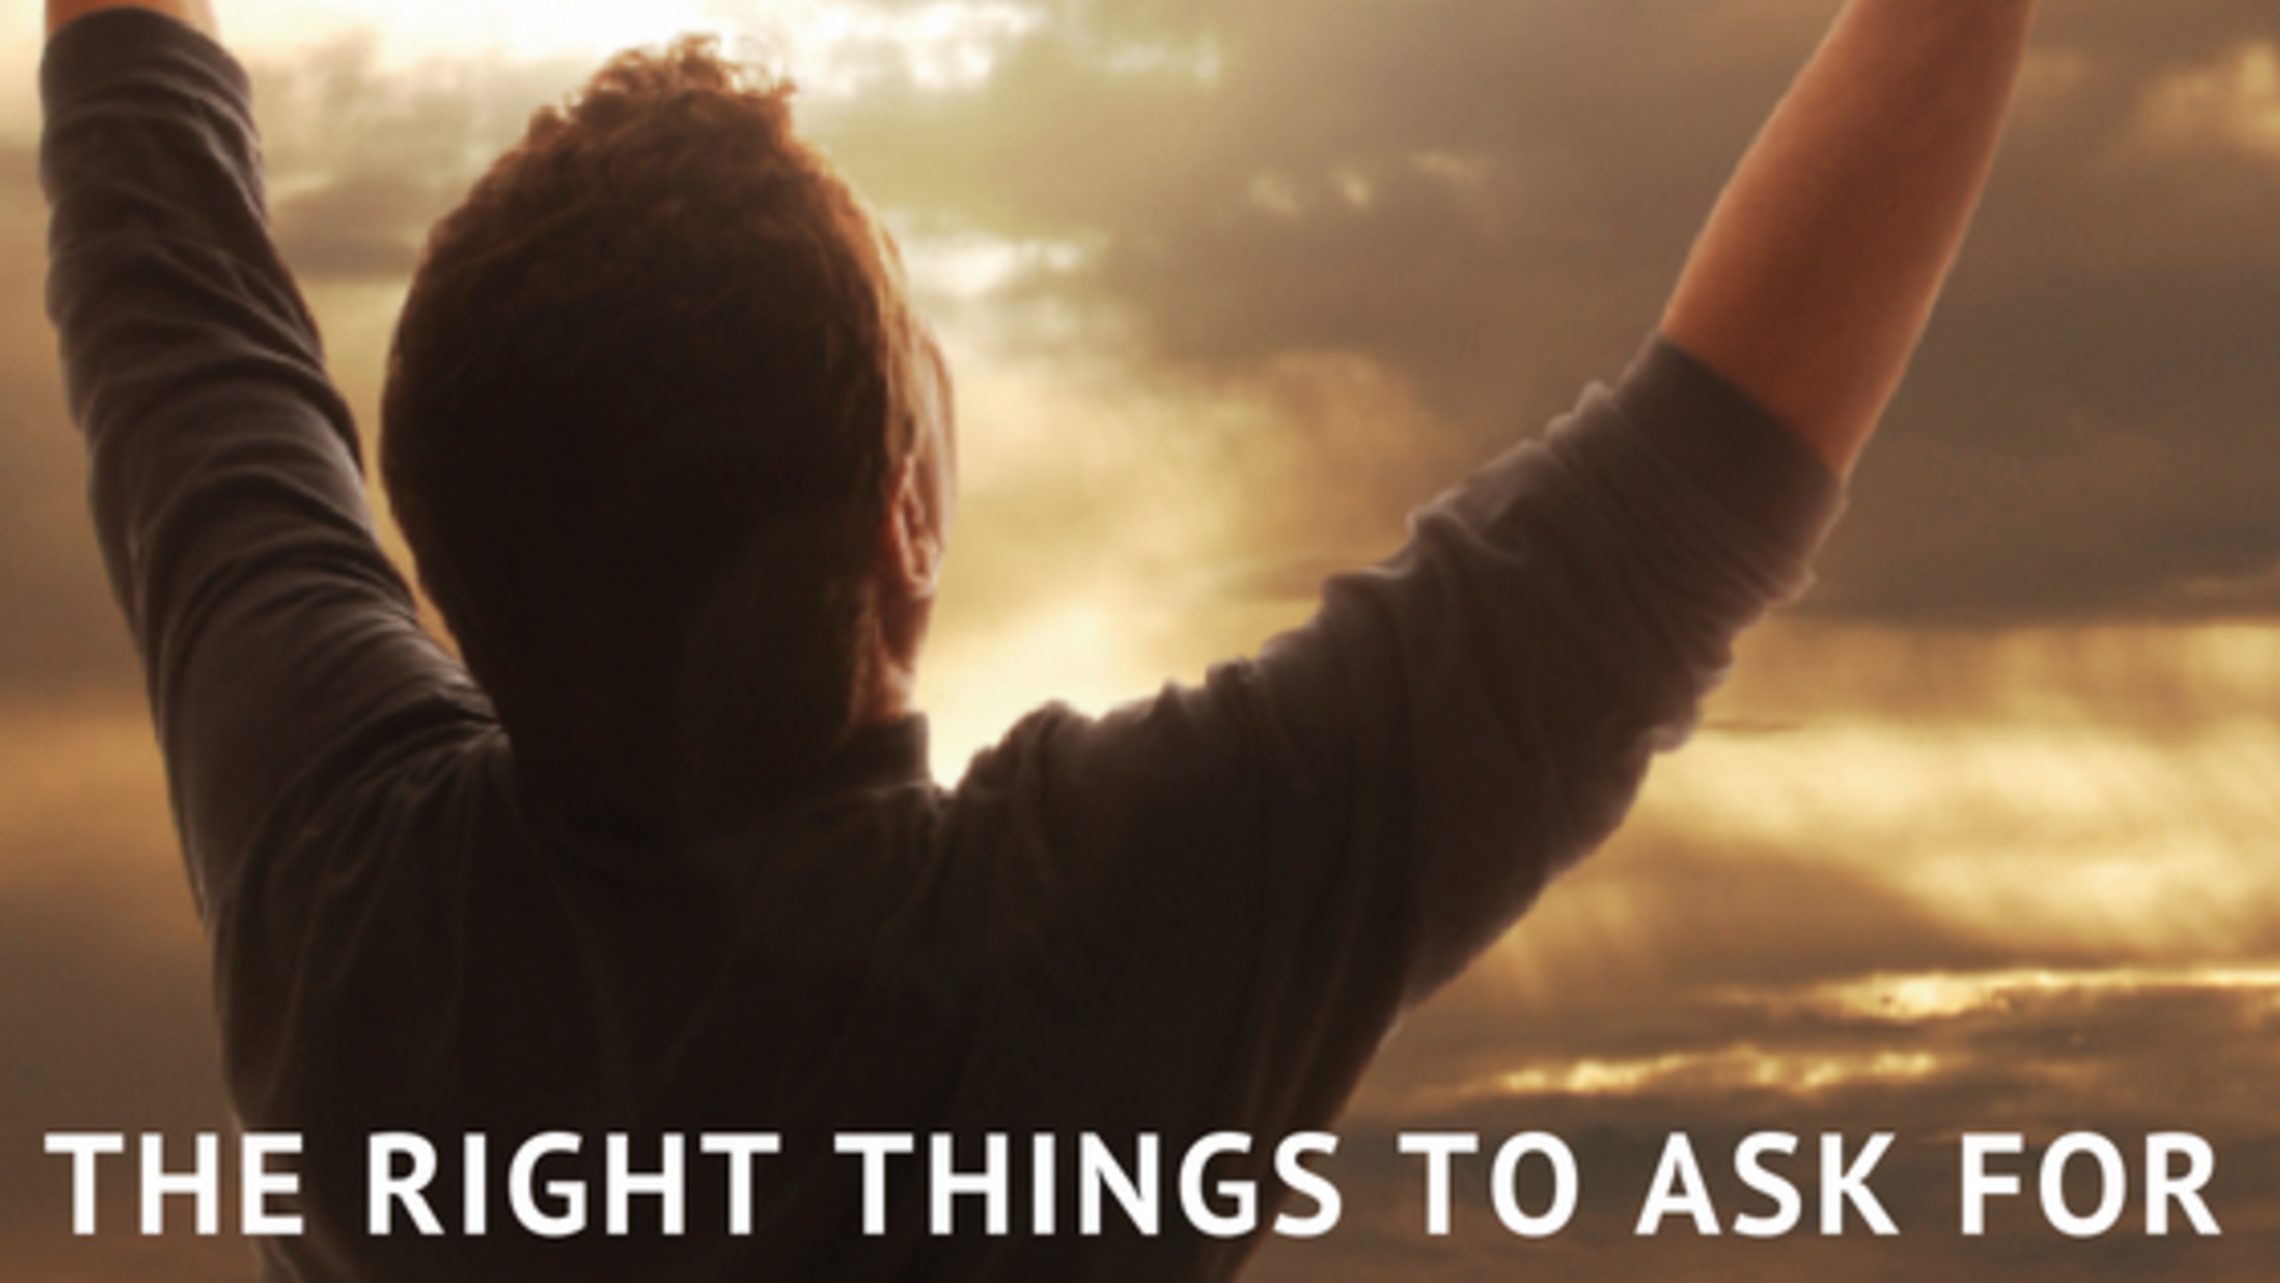 The Right Things To Ask For